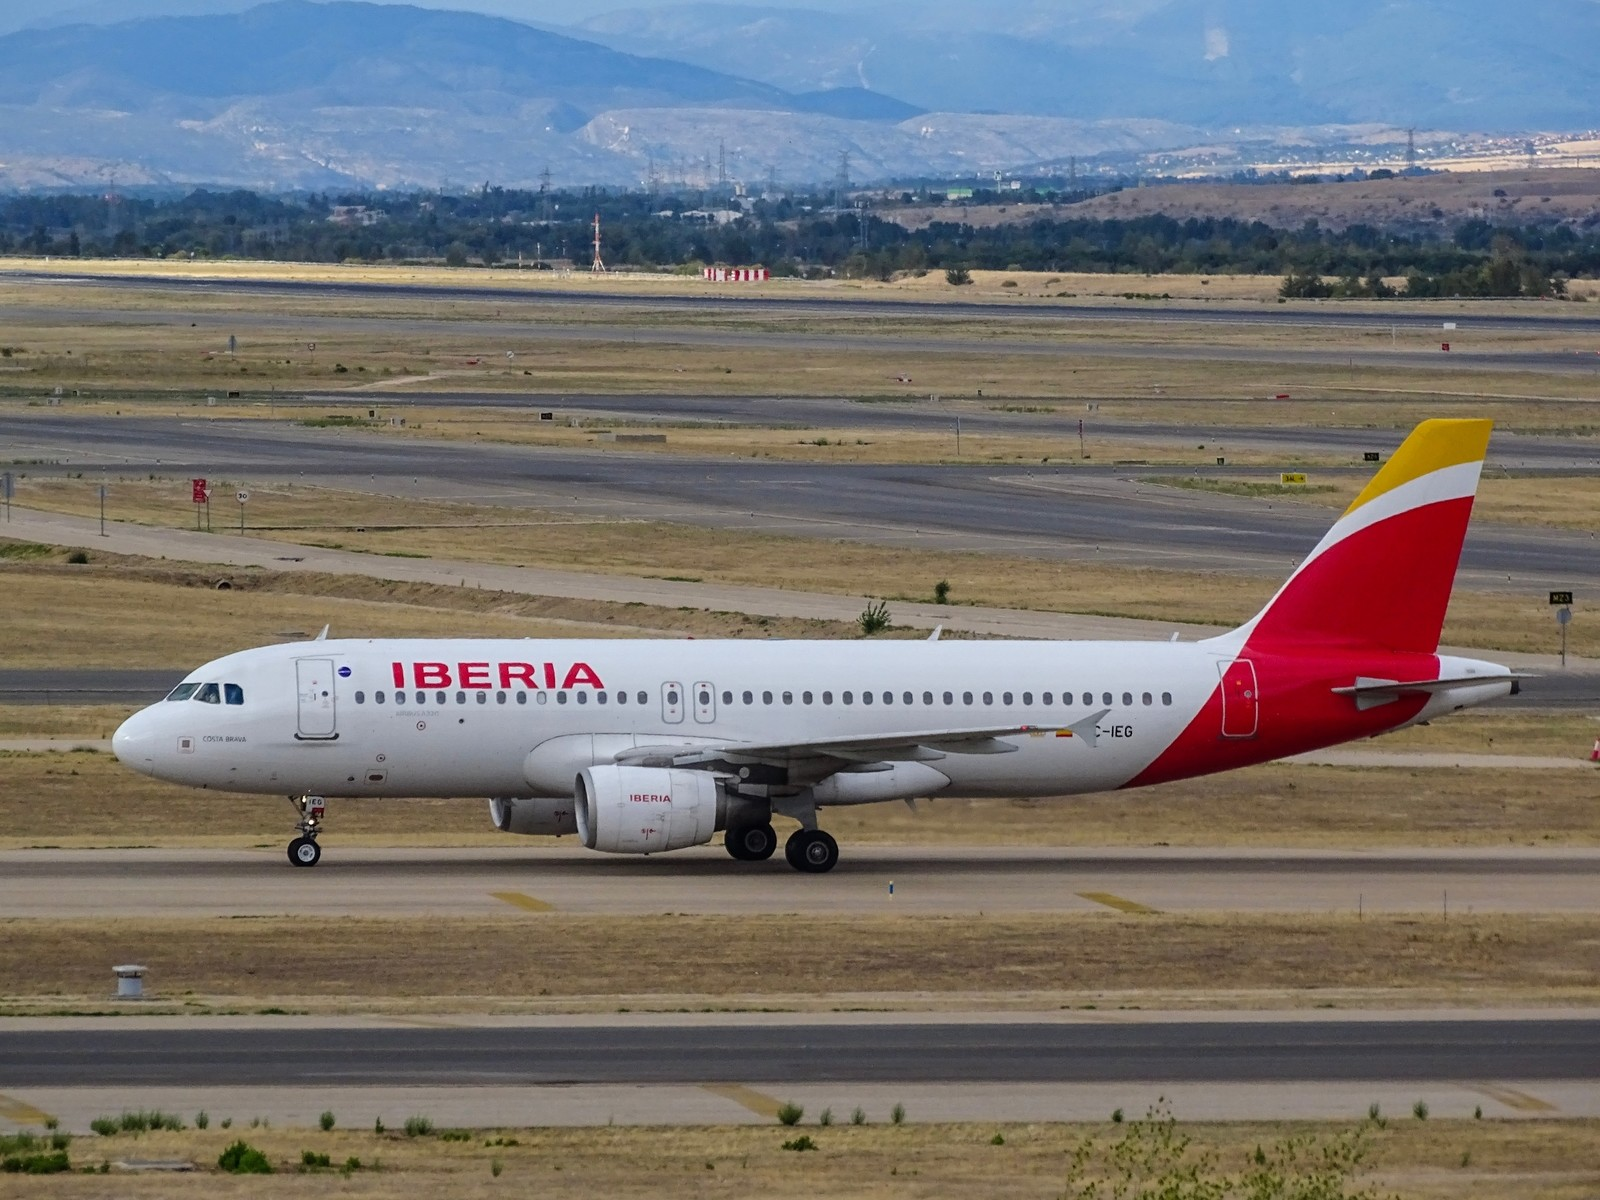 Iberia Plane on Runway